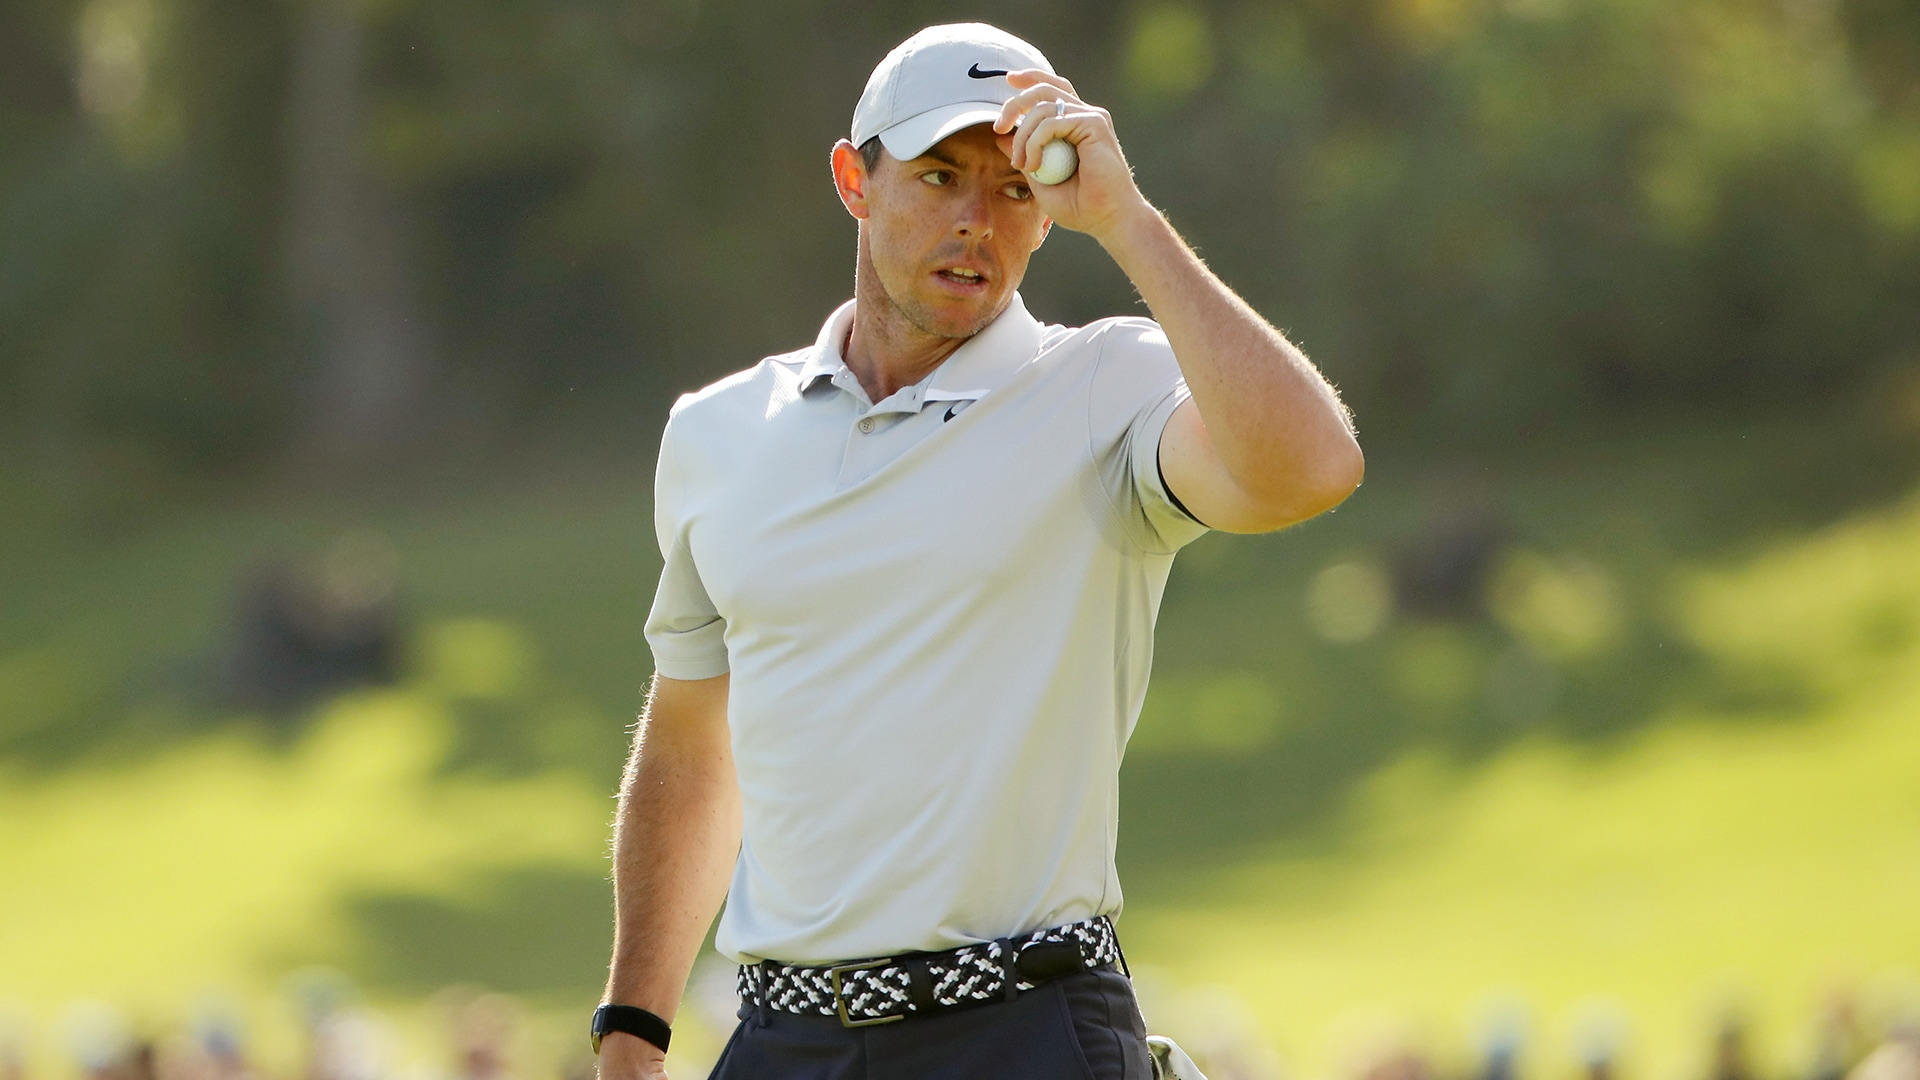 Tied atop jam-packed Genesis leaderboard, Rory McIlroy might have most left in the tank